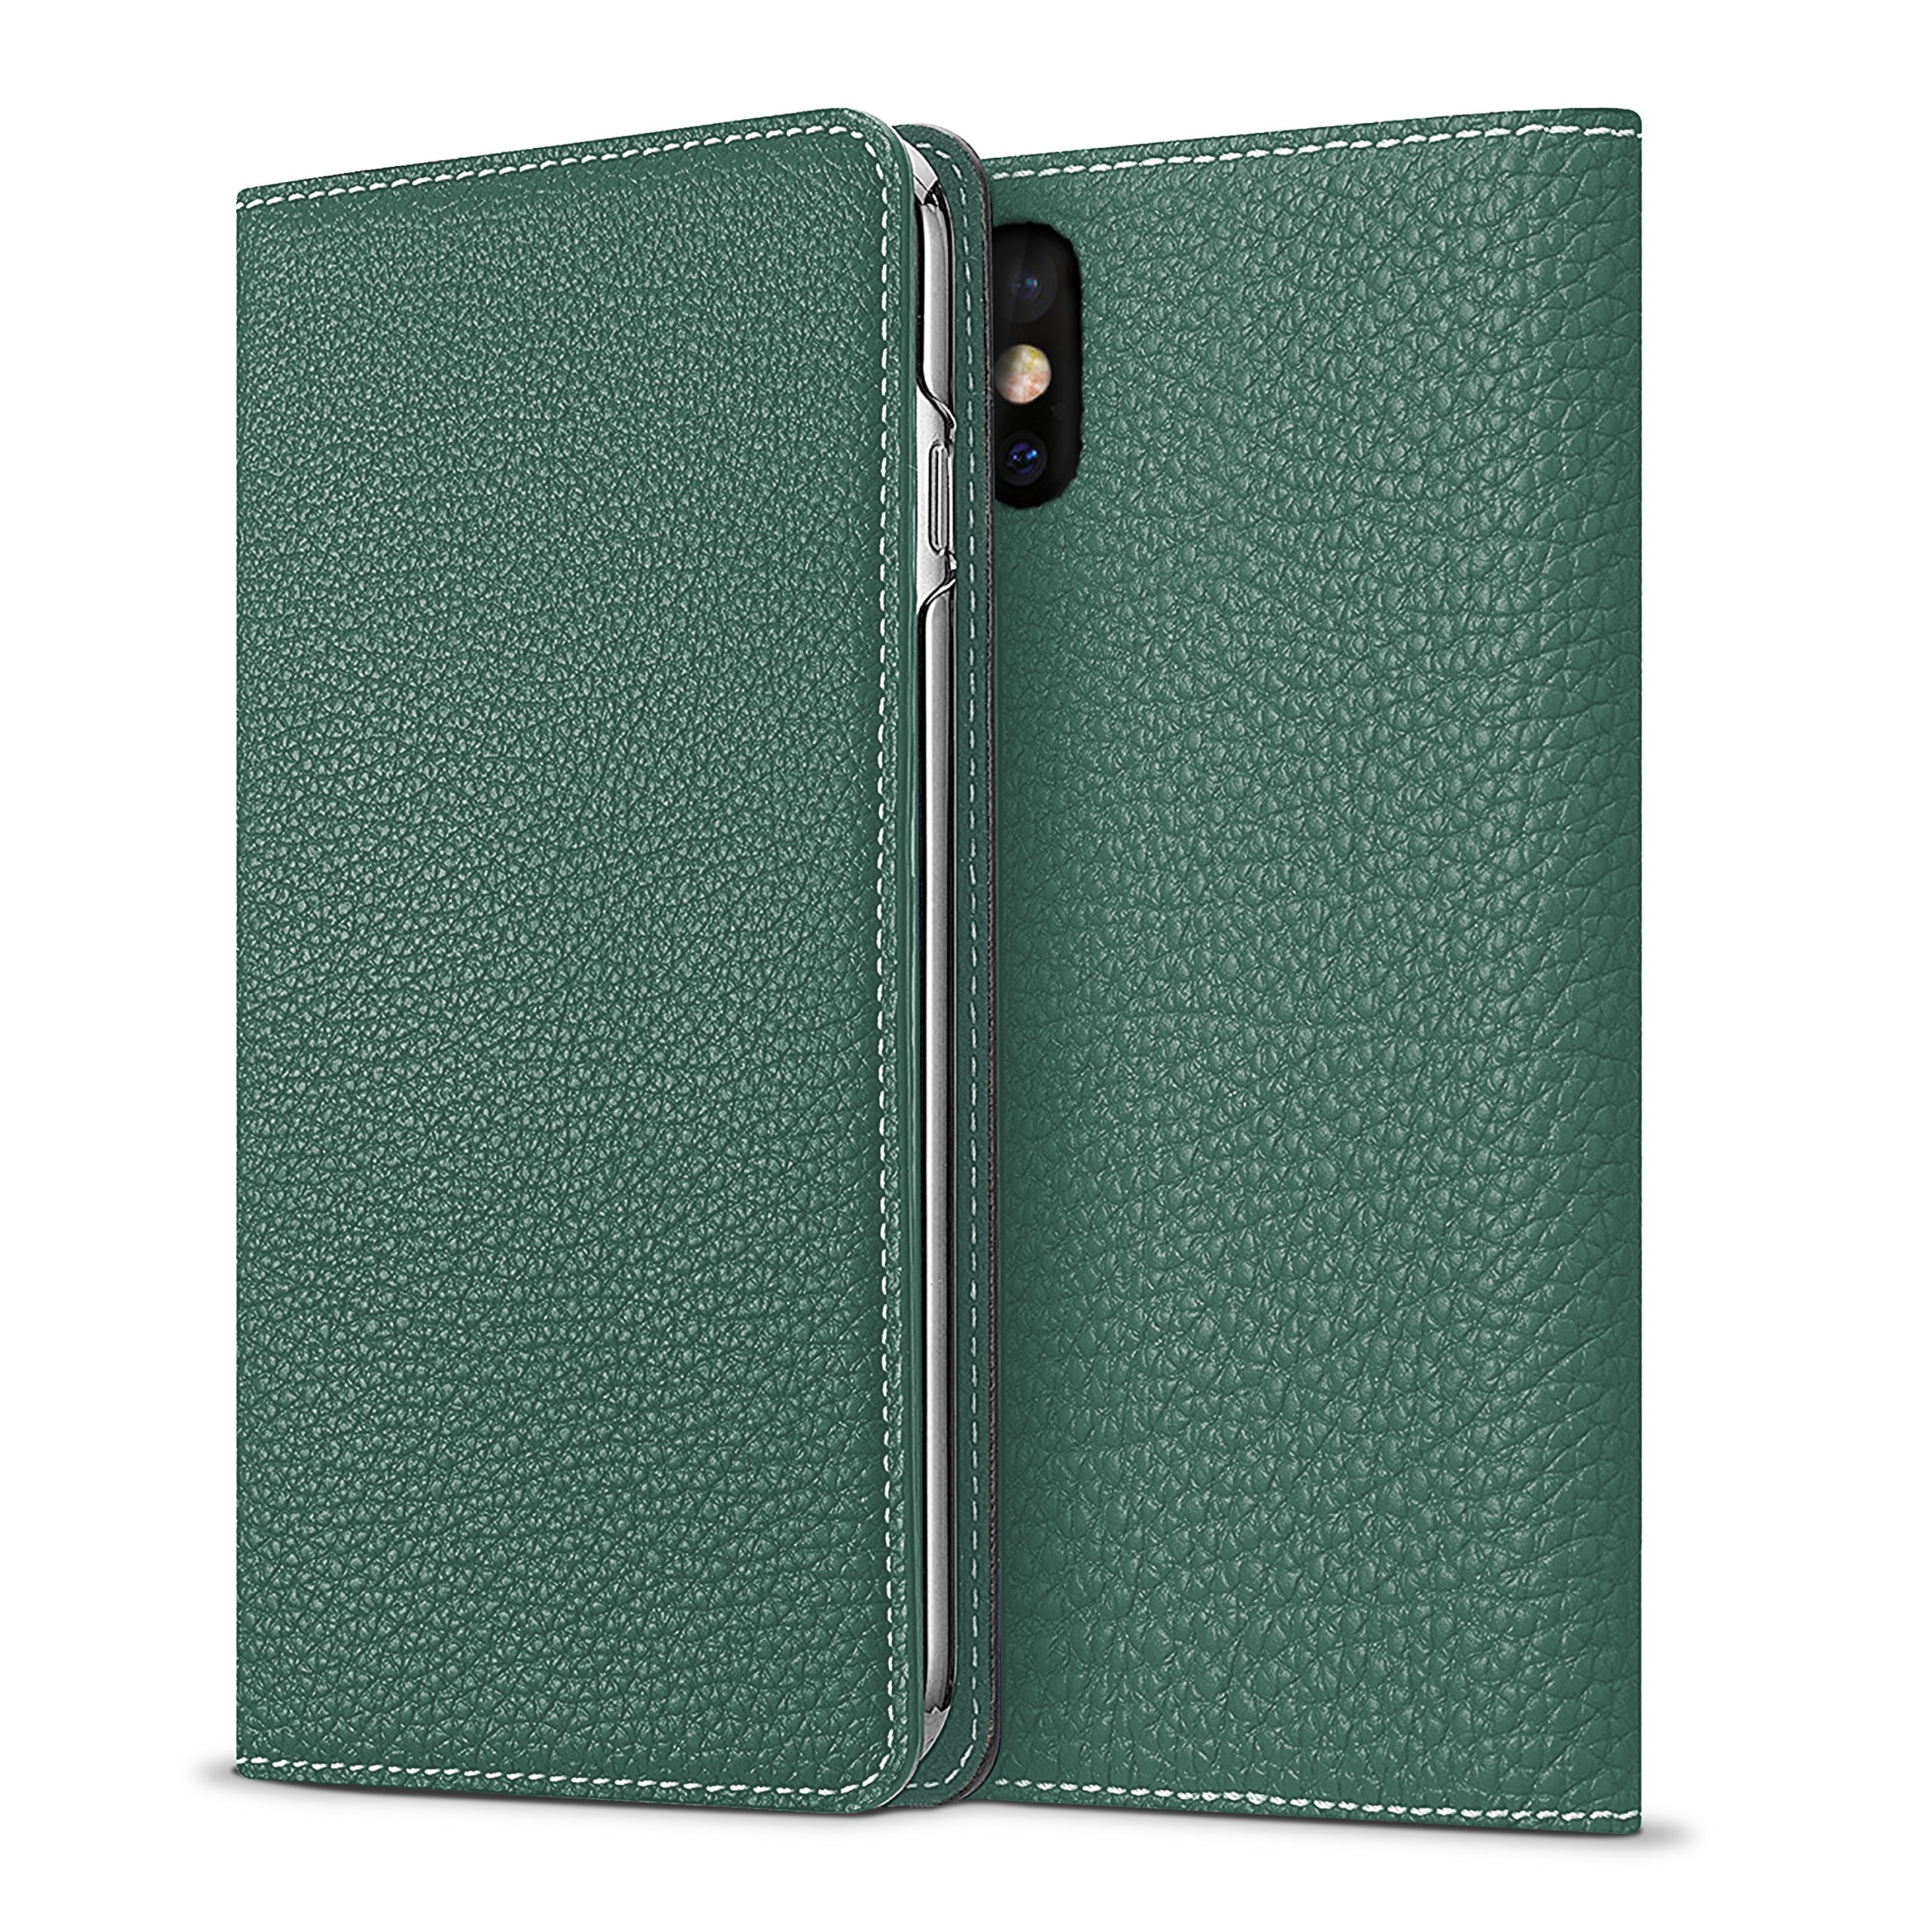 [BLACK FRIDAY 25%OFF] BONAVENTURA iPhone X Leather Flip Wallet Cover Case (Perlinger Full-Grain Leather) [iPhone X | MALACHITE GREEN]